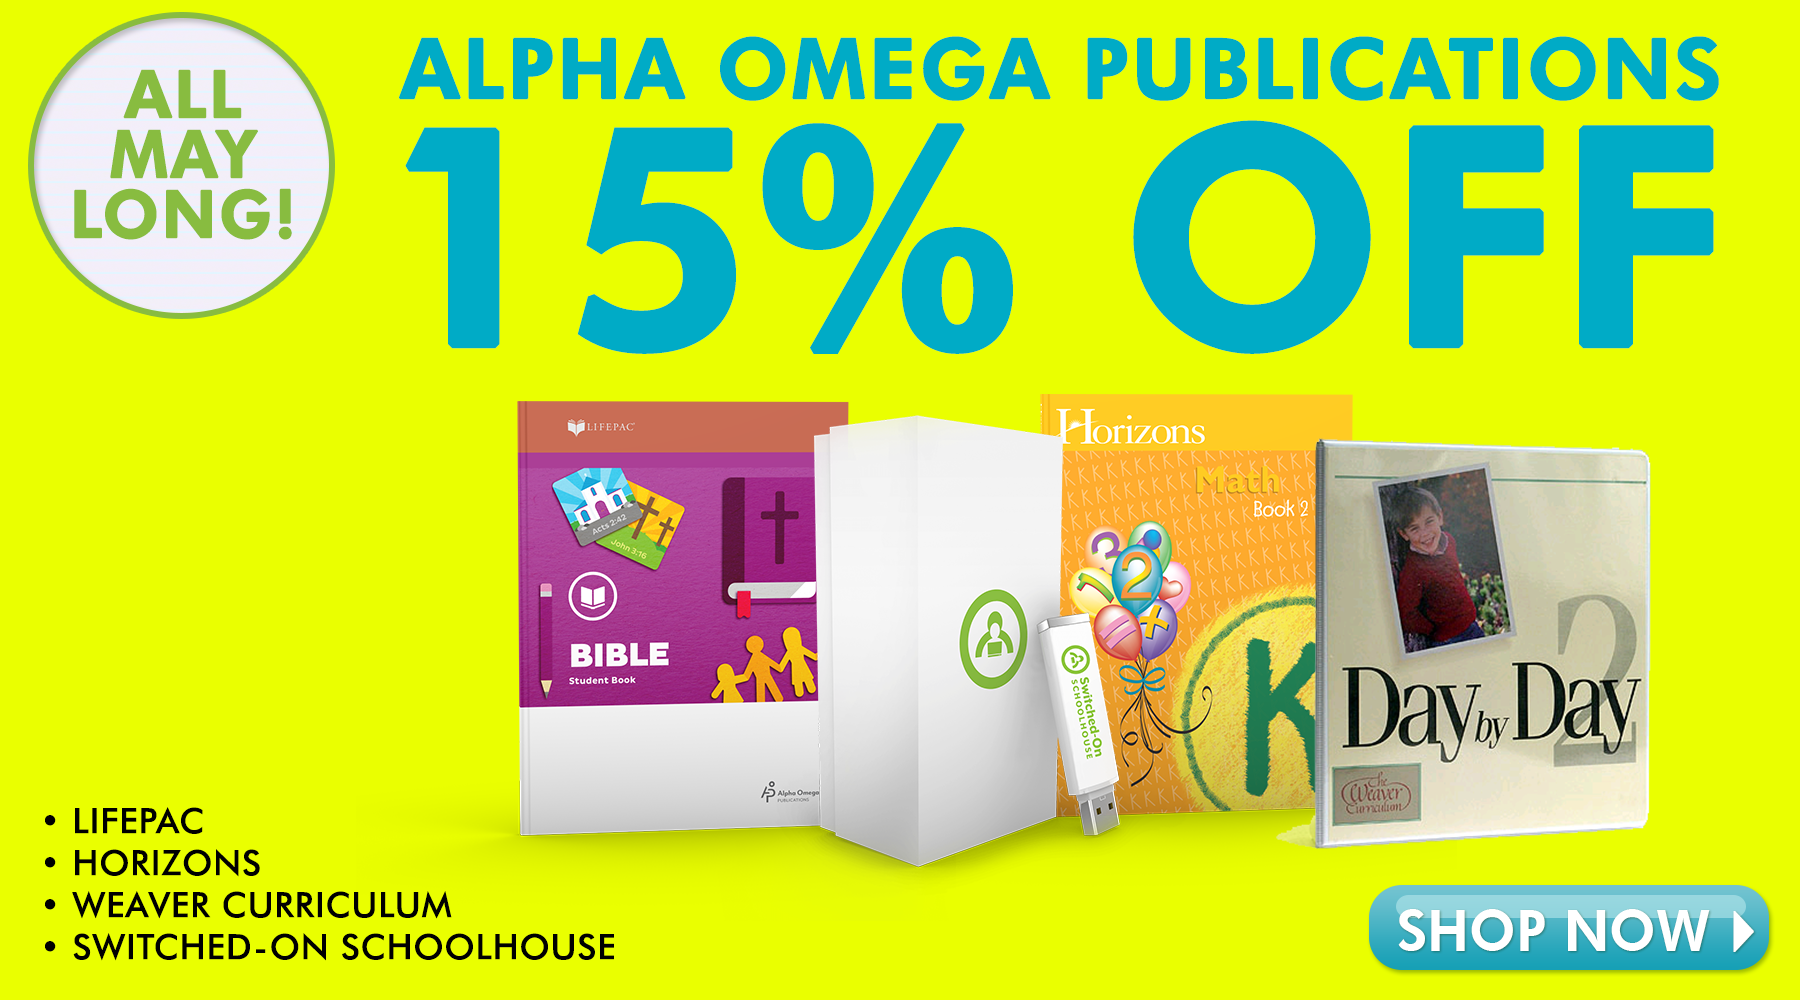 Alpha Omega Publications (AOP) 15% off all May long